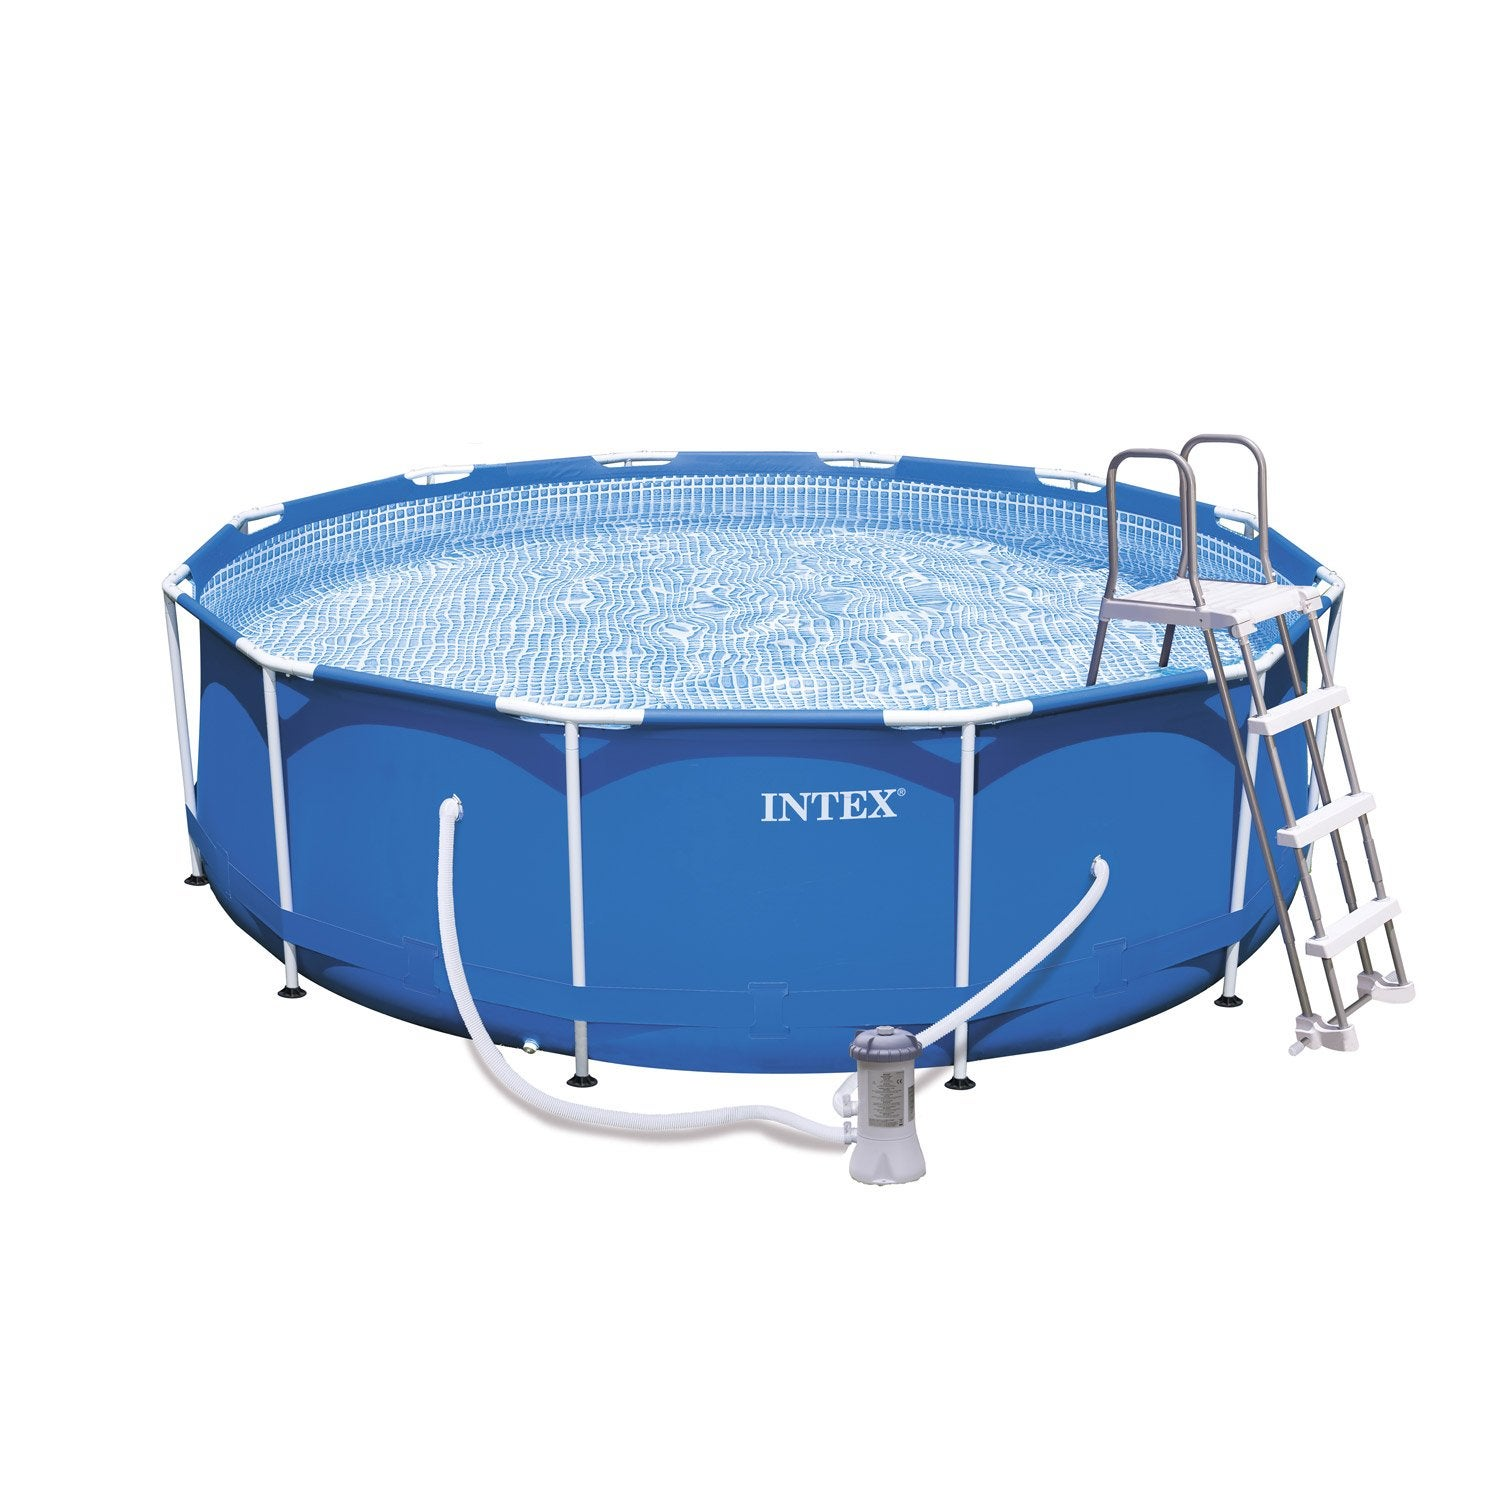 Piscine hors sol autoportante tubulaire m tal frame intex for Intex piscine